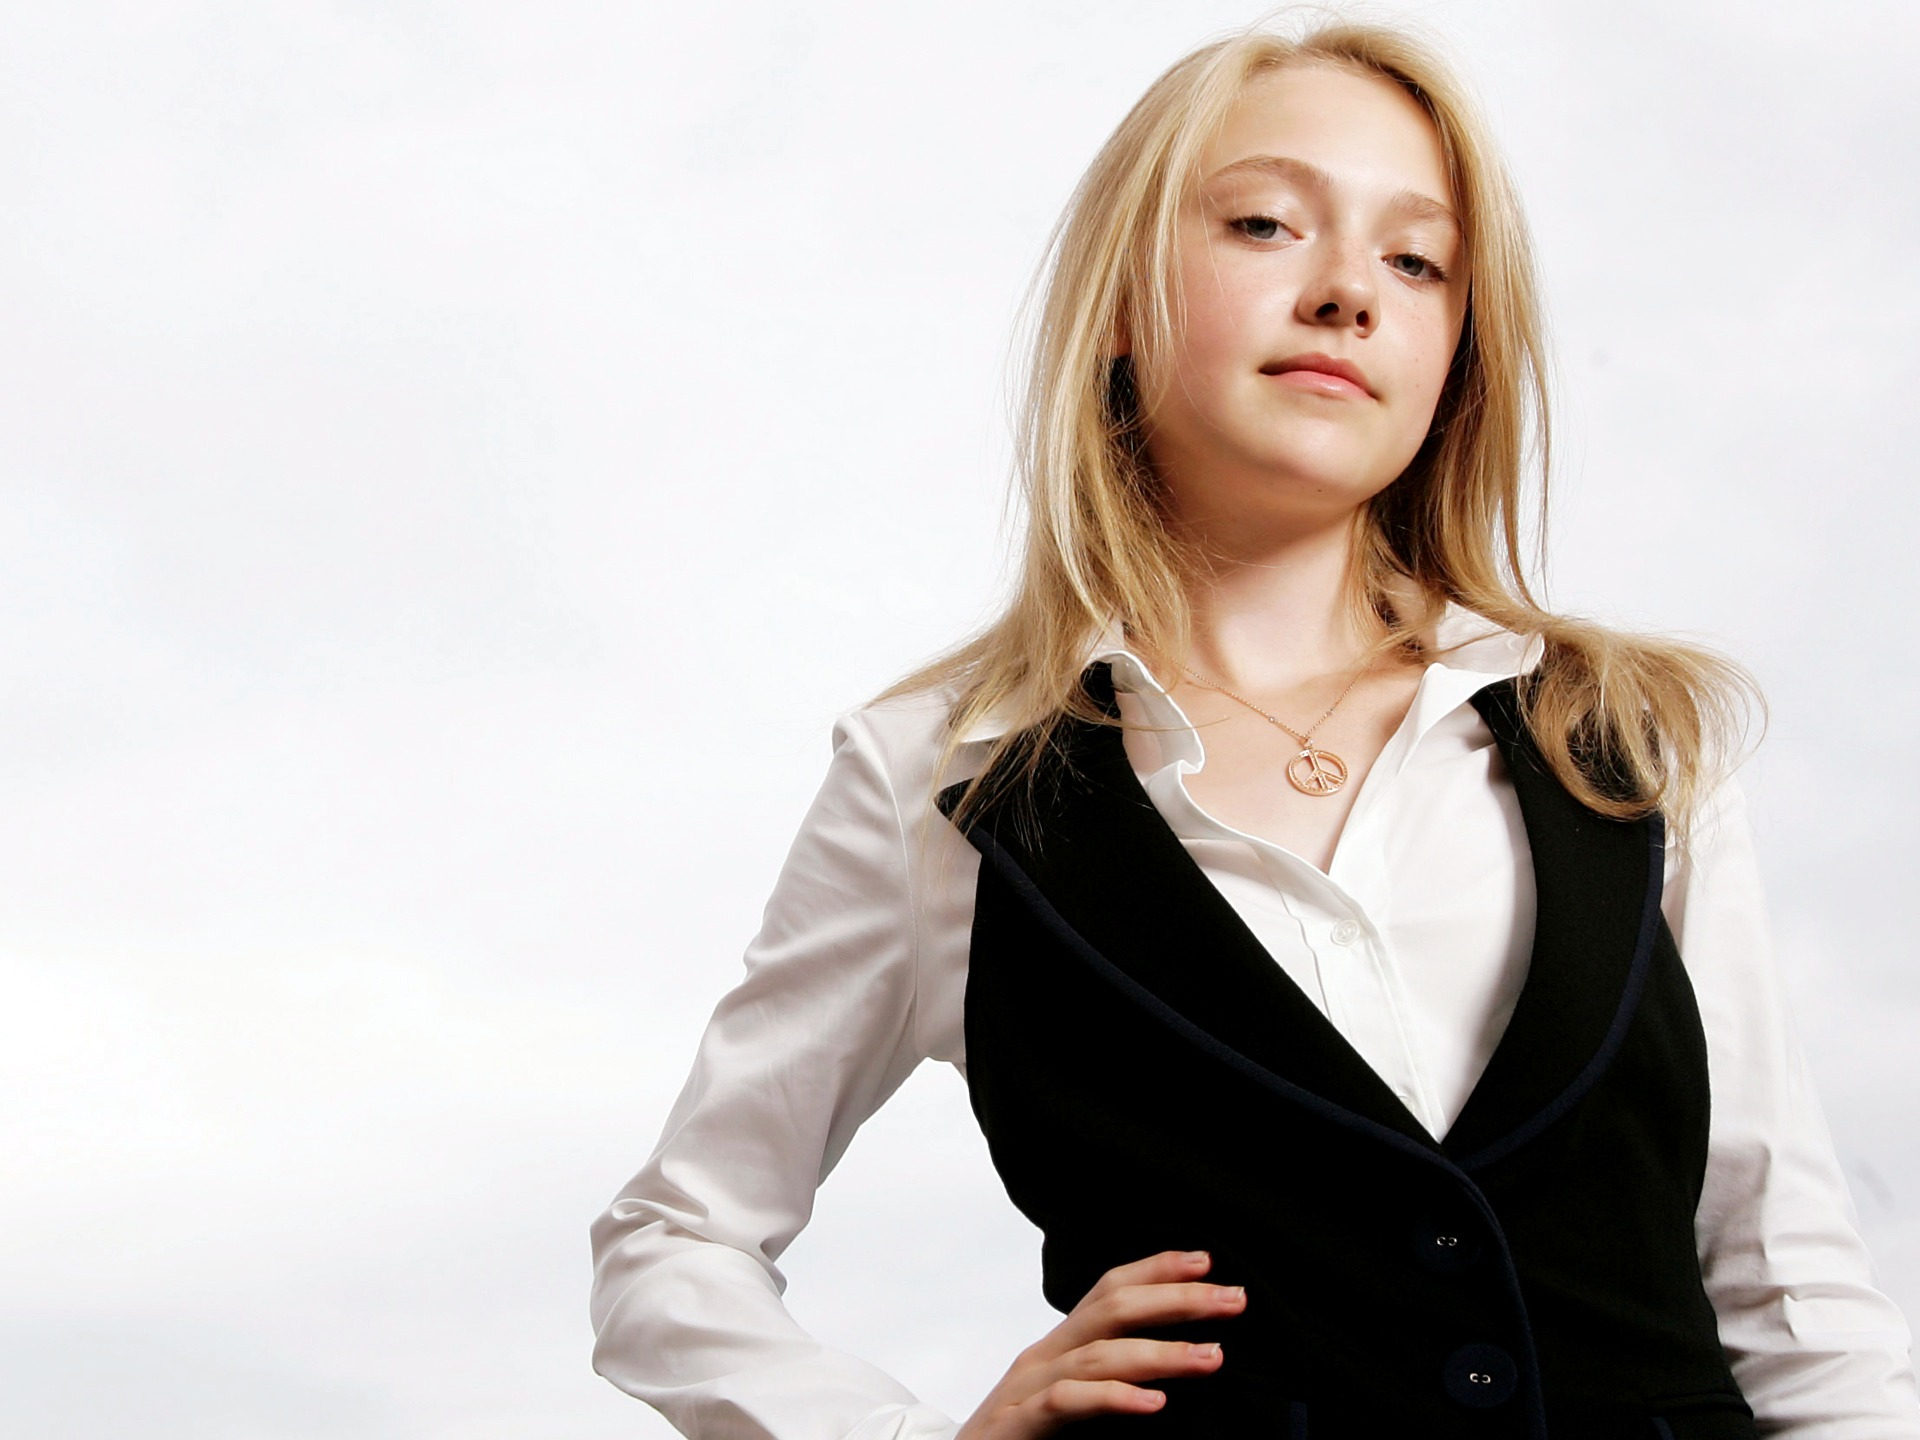 Dakota Fanning 2010 Photoshoot wallpaper